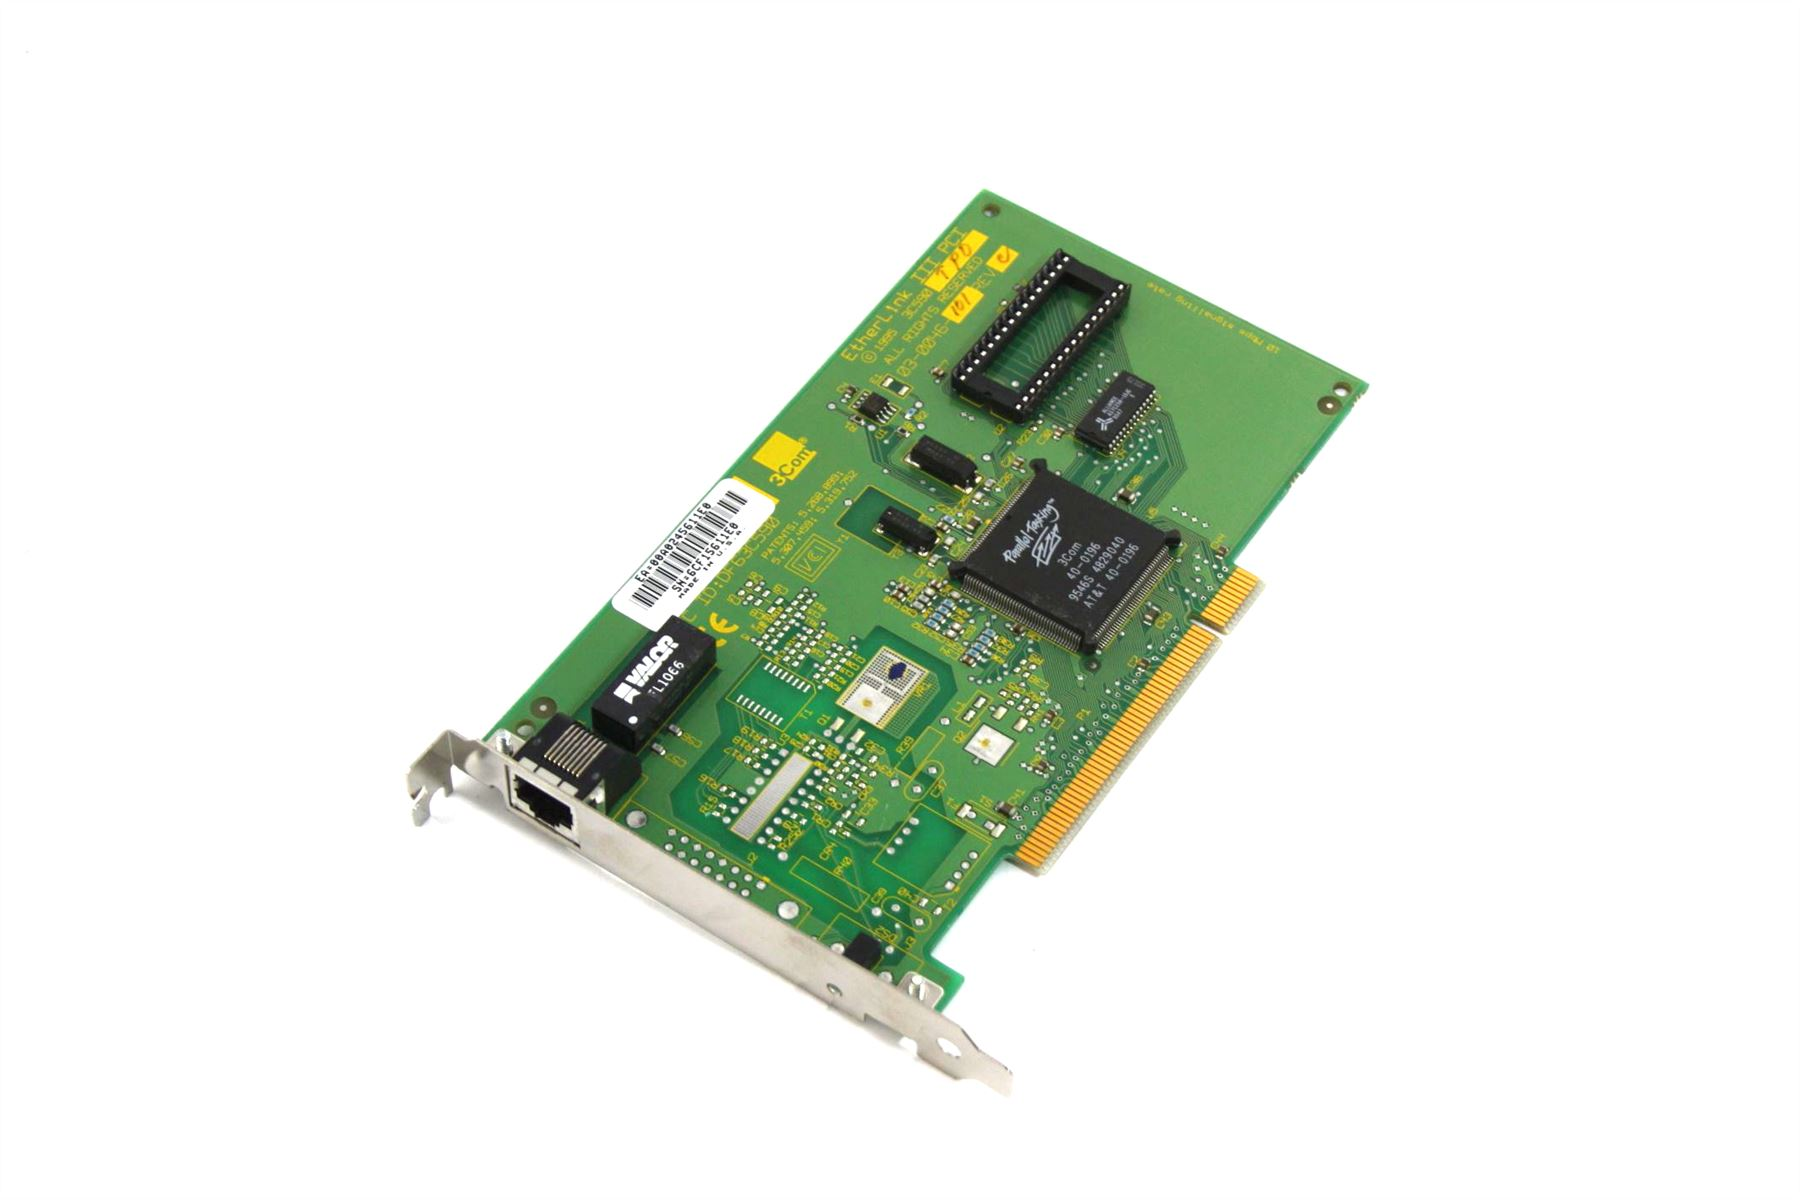 3COM ETHERLINK III 10 PCI 3C590-TPO DRIVERS WINDOWS 7 (2019)